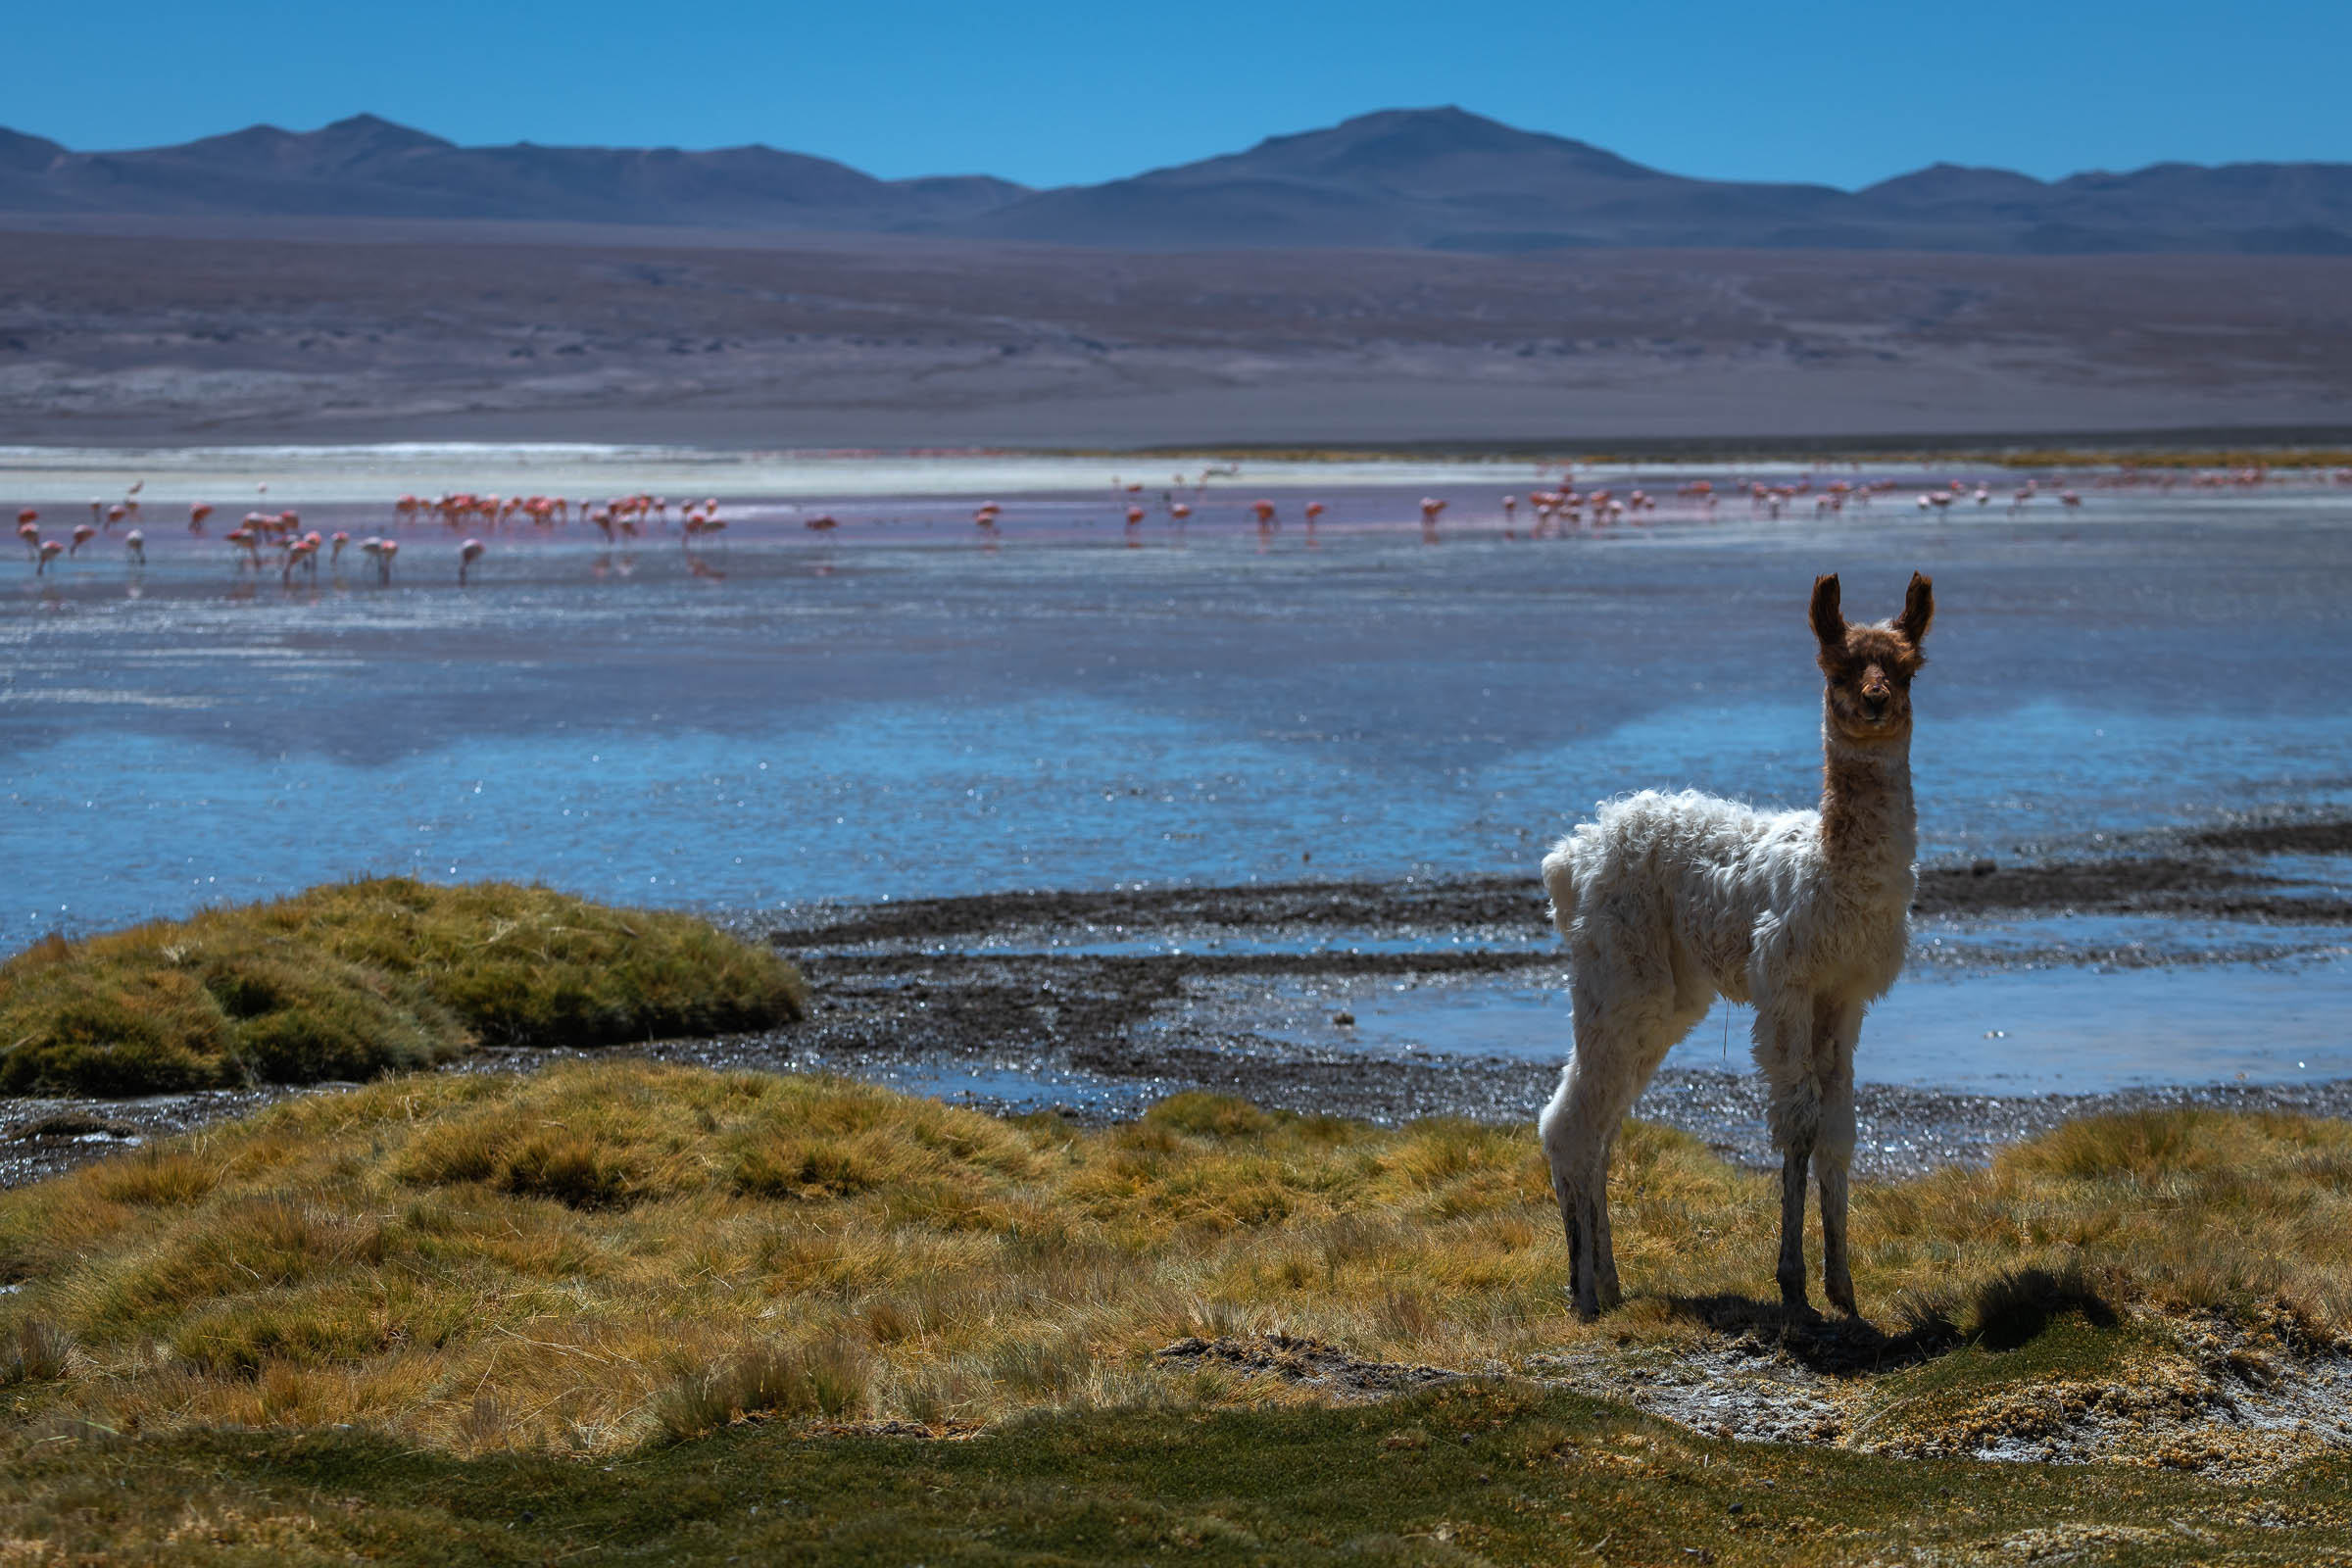 Bolivia Wildlife Olga Finearts Photography Fine Art Prints Stock Images Nature Abstracts Landscapes People Travel Photography